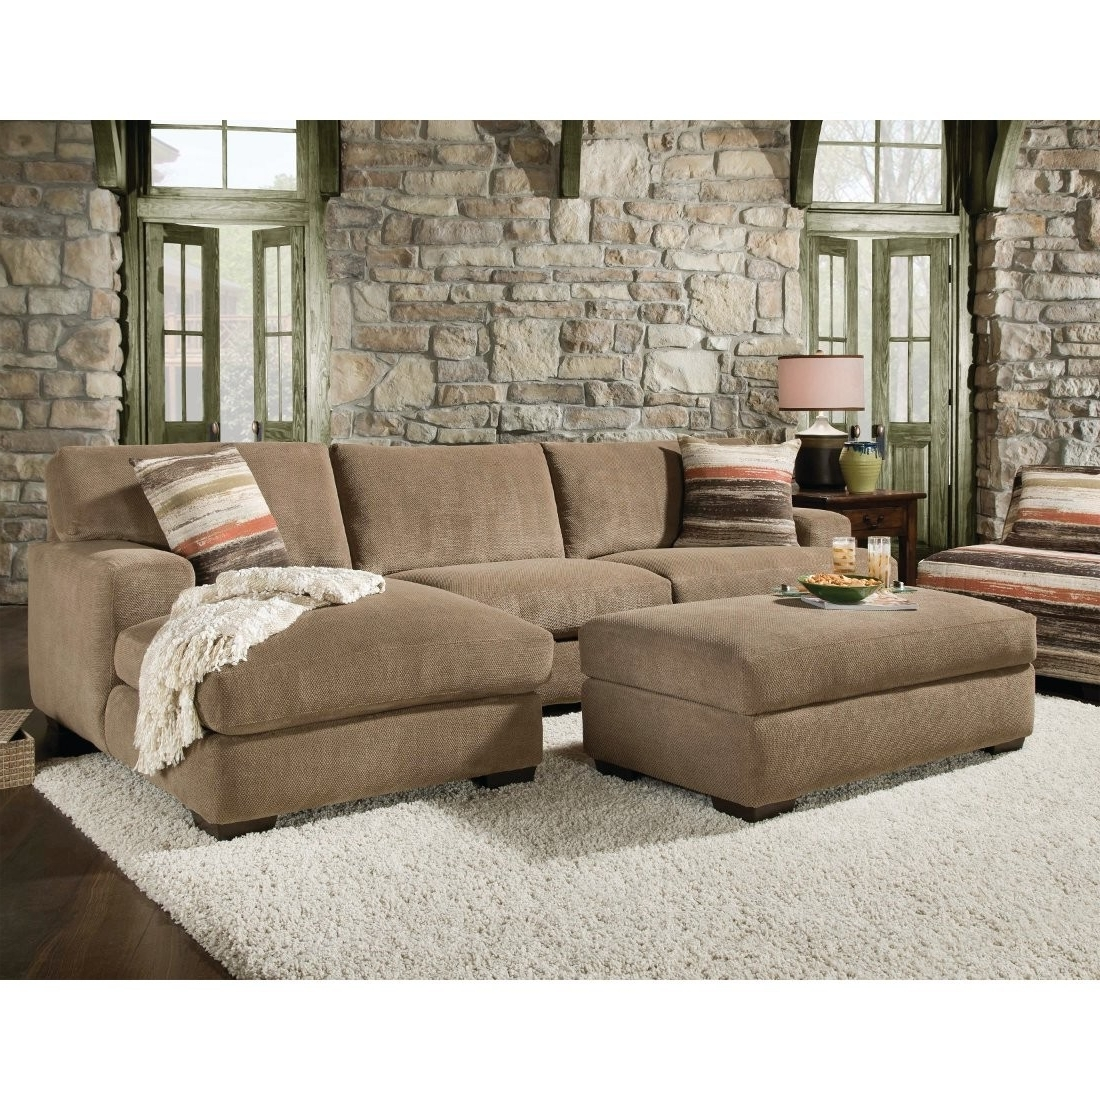 Recent Sectionals With Chaise And Ottoman Within Beautiful Sectional Sofa With Chaise And Ottoman Pictures (View 6 of 20)